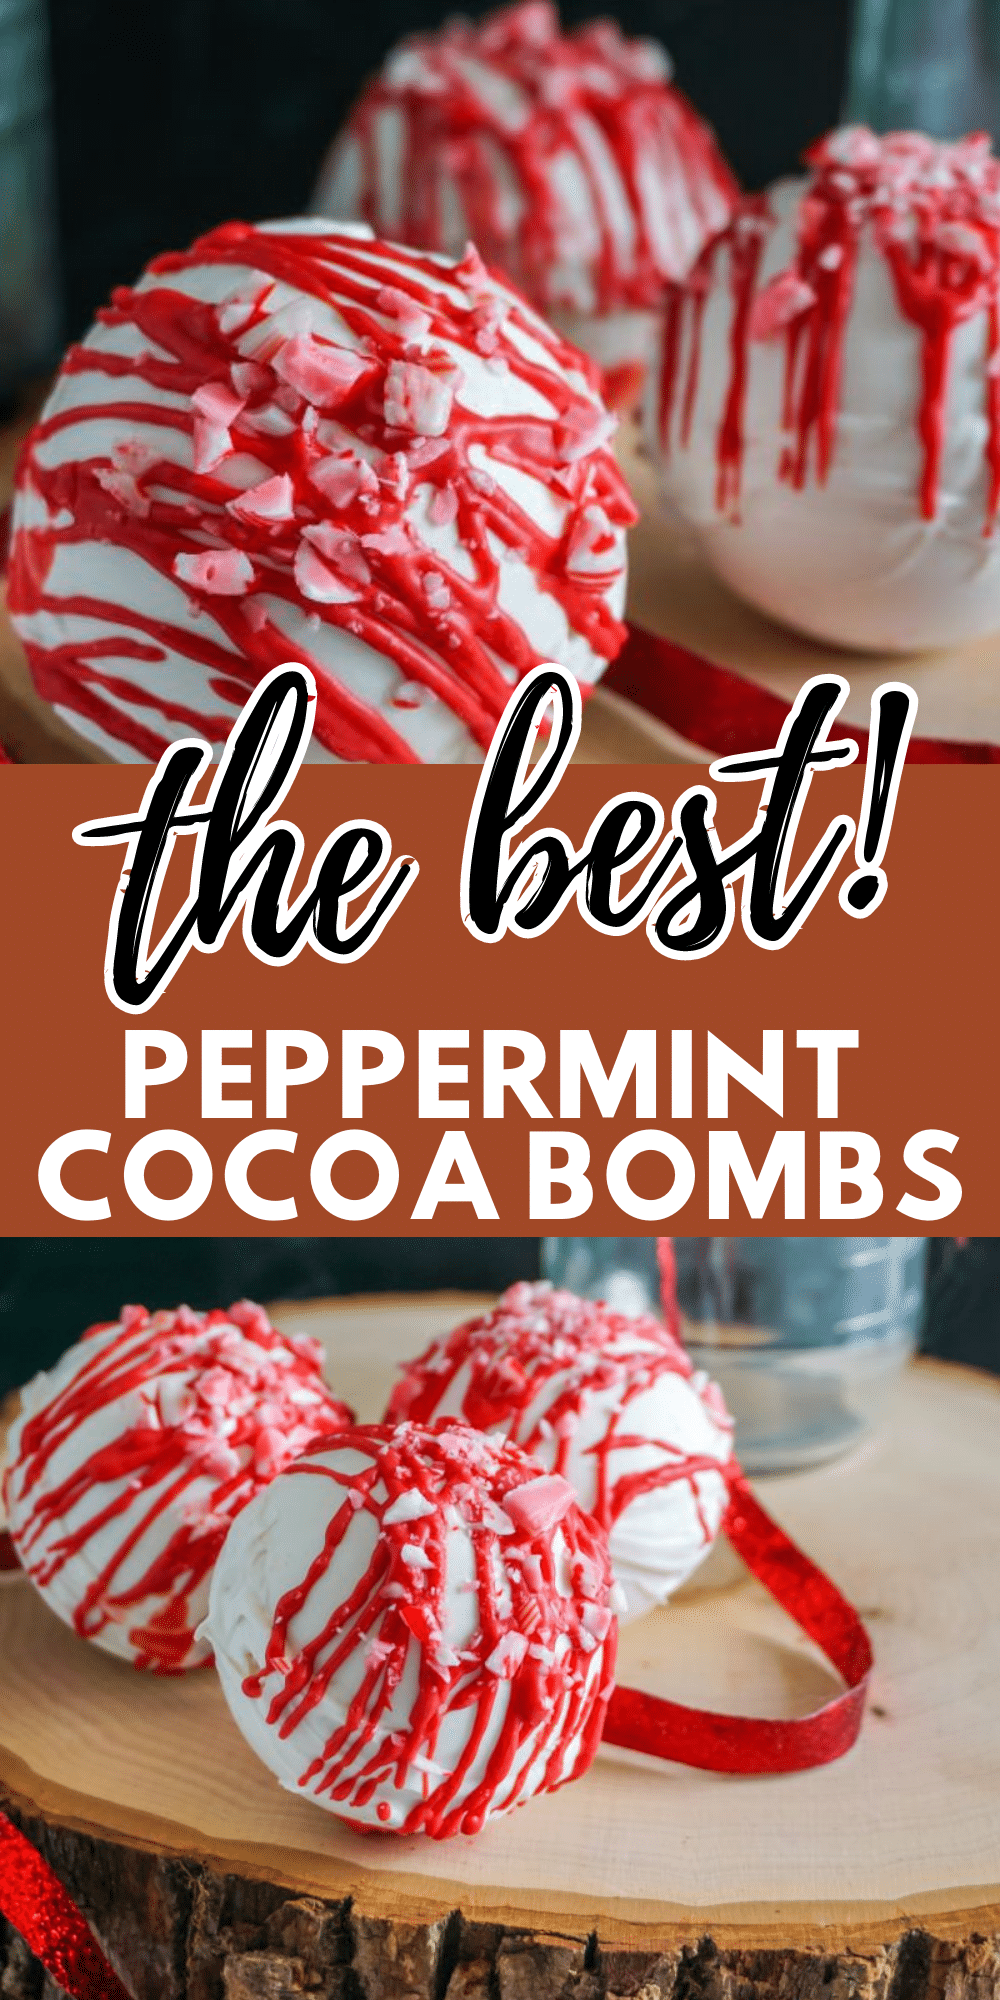 Peppermint Hot Cocoa Bombs are full of minty goodness! So much mint flavor in your cup of hot cocoa! Great for winter! #hotcocoabombs #hotcocoa #winter #peppermint via @wondermomwannab